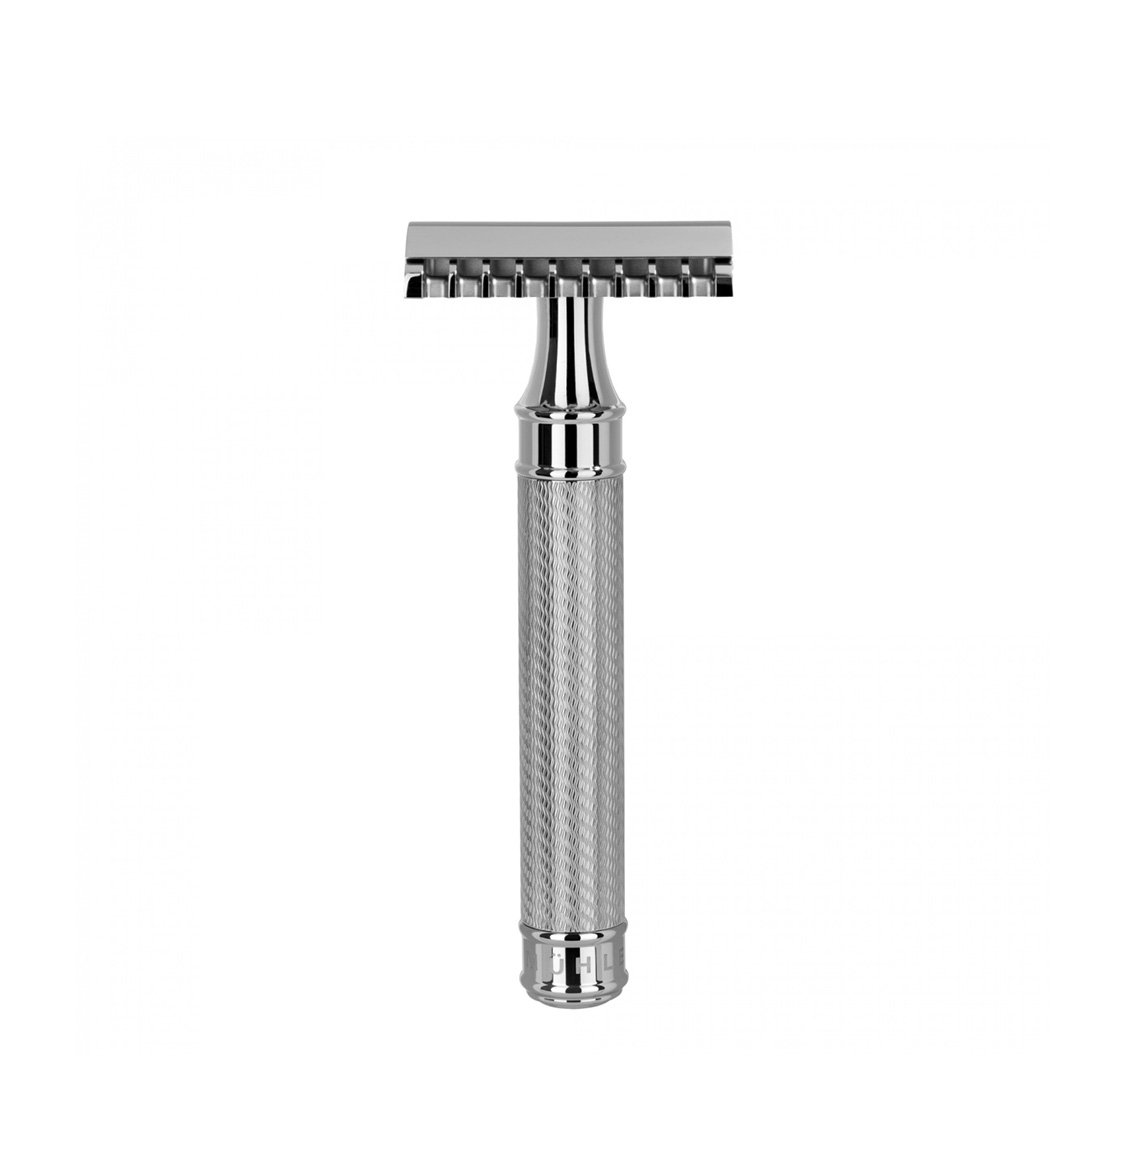 Muhle Silvertip Badger Brush and Open Comb Safety Razor